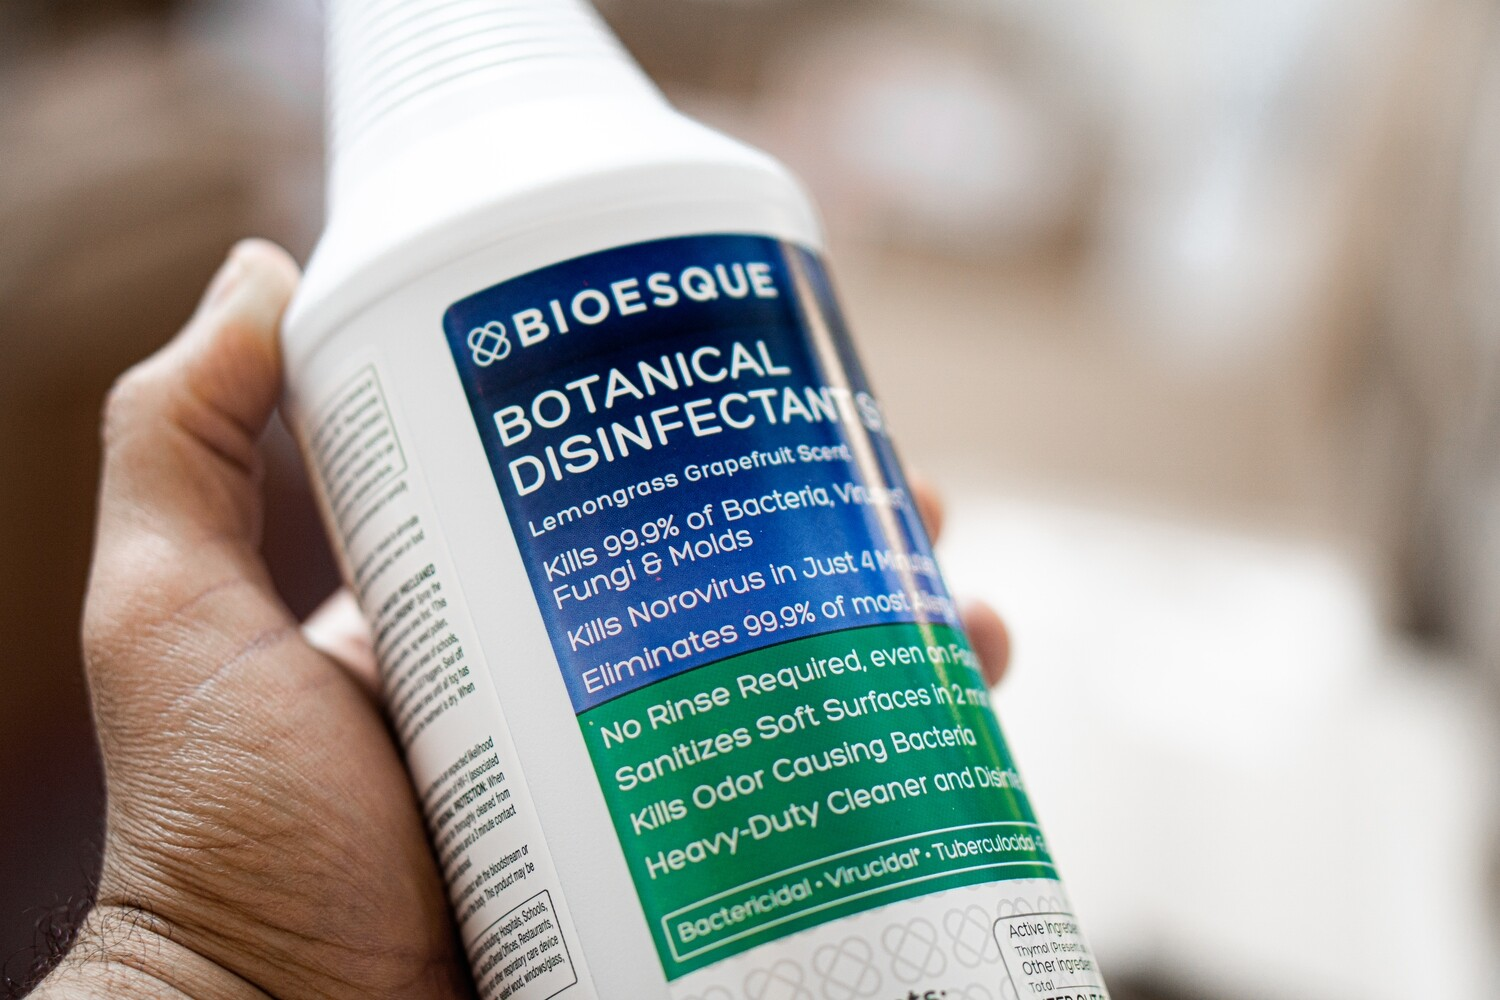 BOTANICAL DISINFECTANT SOLUTION by BIOESQUE  (1 quart)